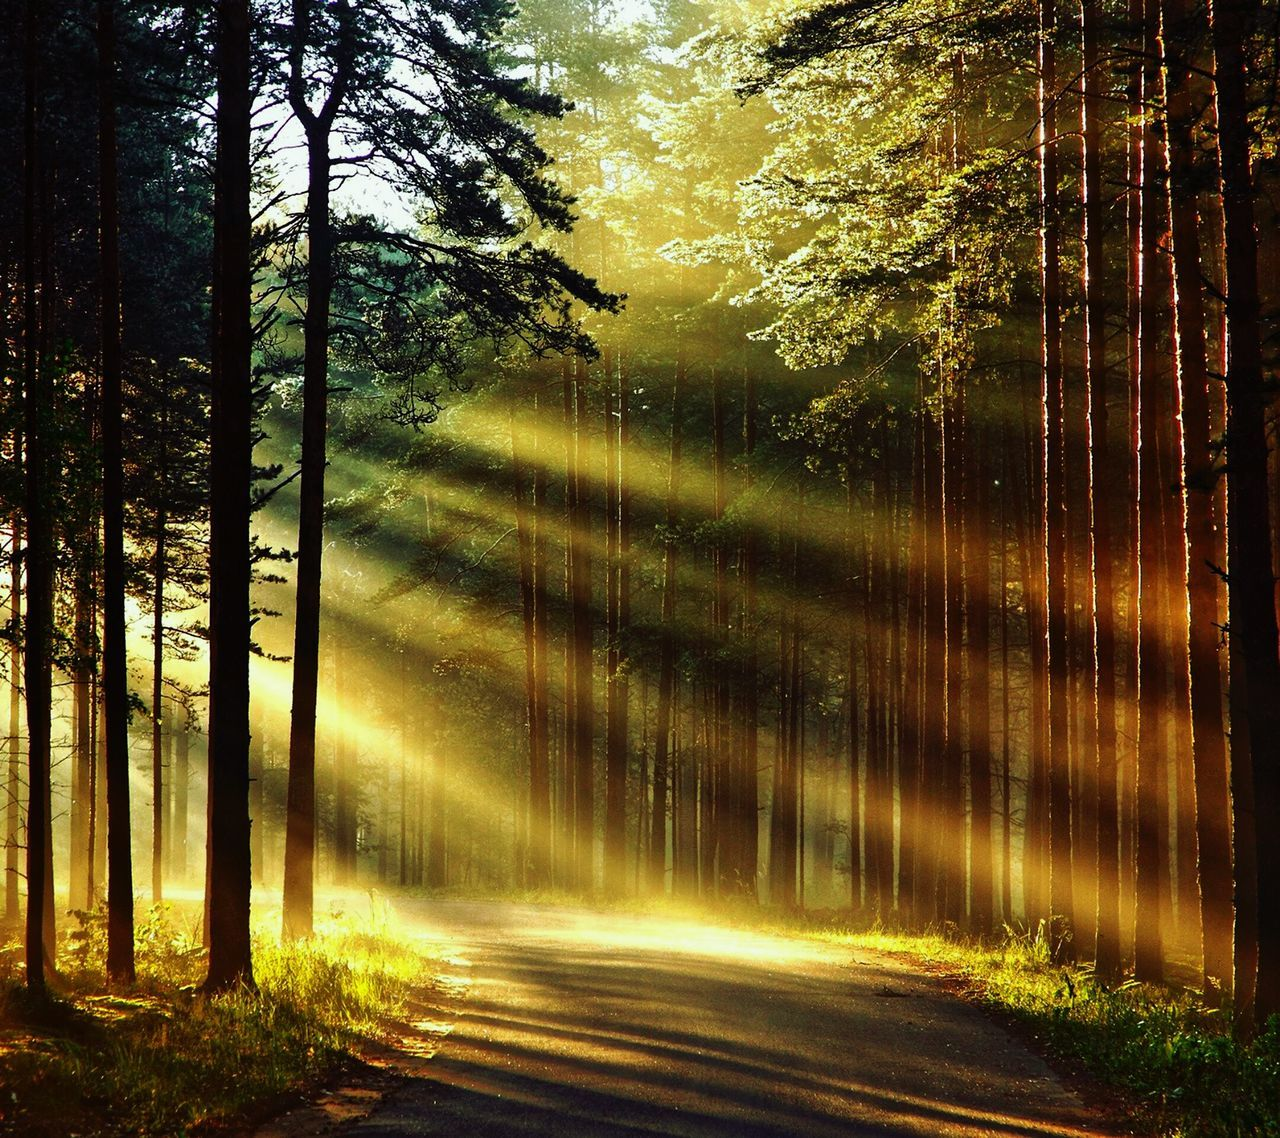 Tree Nature Sunlight No People Tranquility Beauty In Nature Outdoors Scenics Forest Tranquil Scene Sky Day